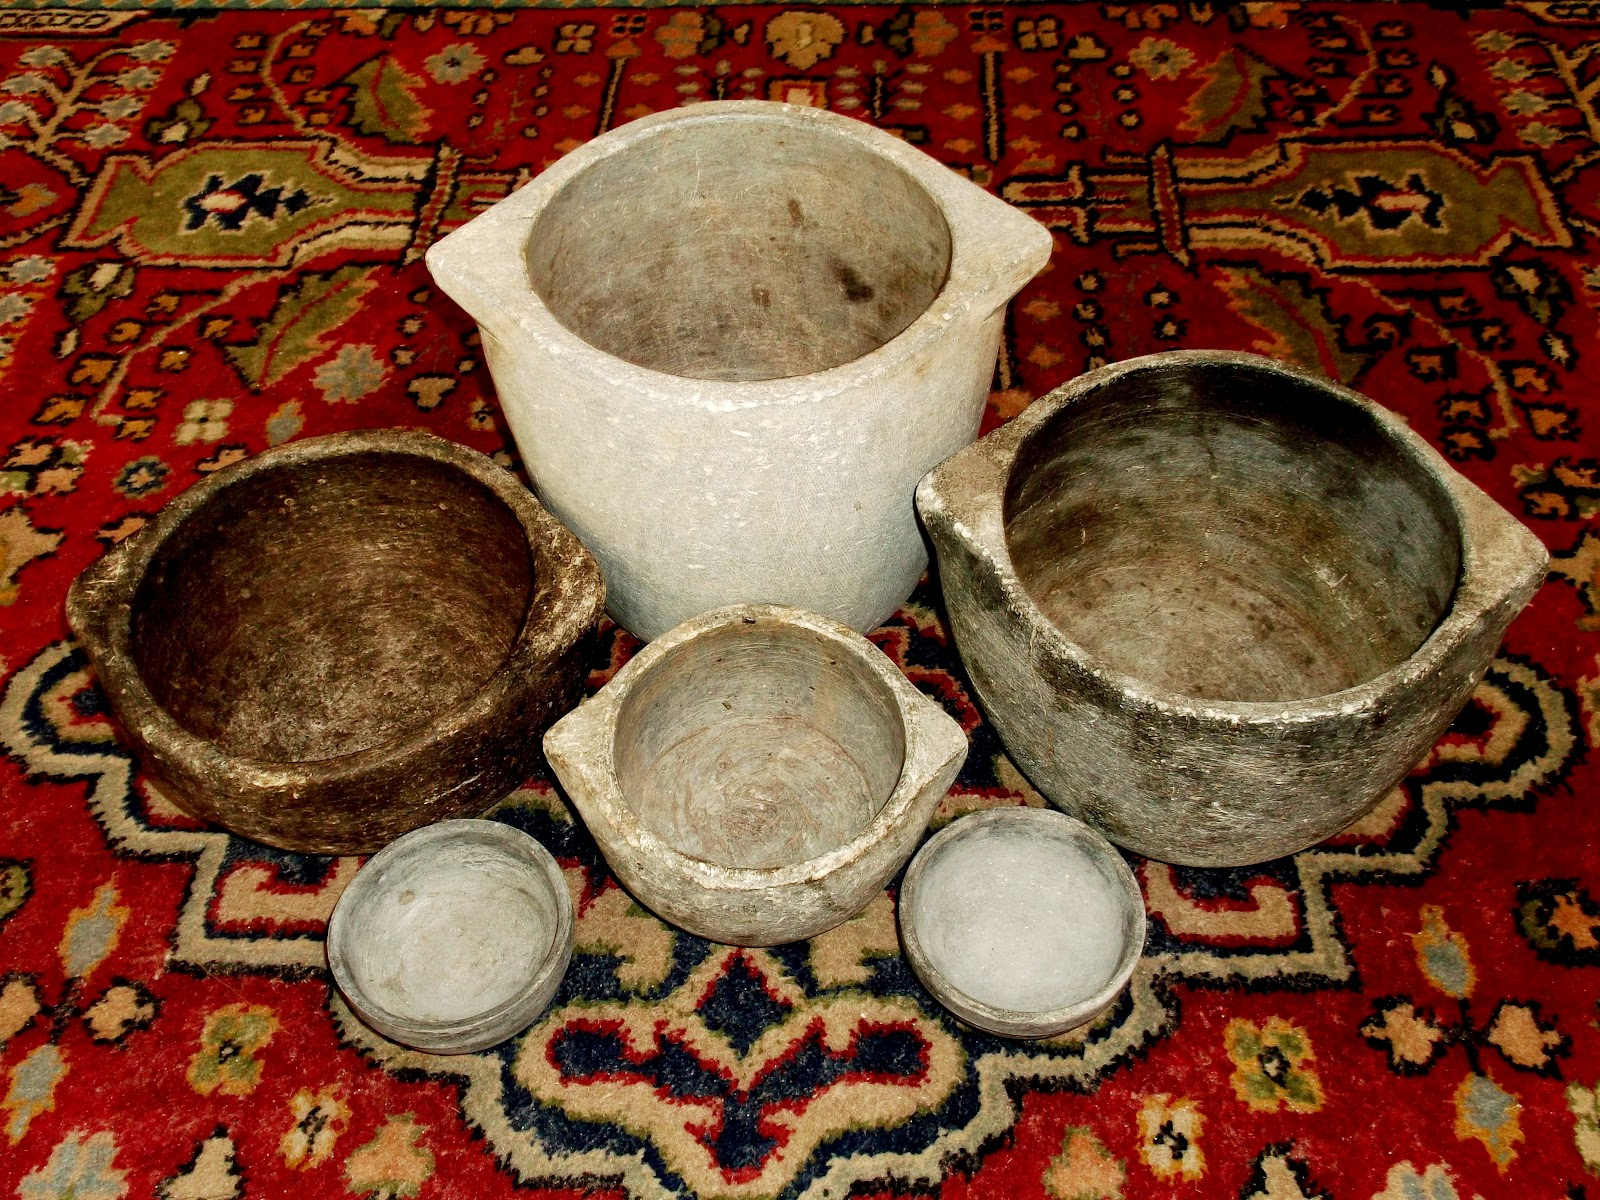 Antique Stone Cooking Pots